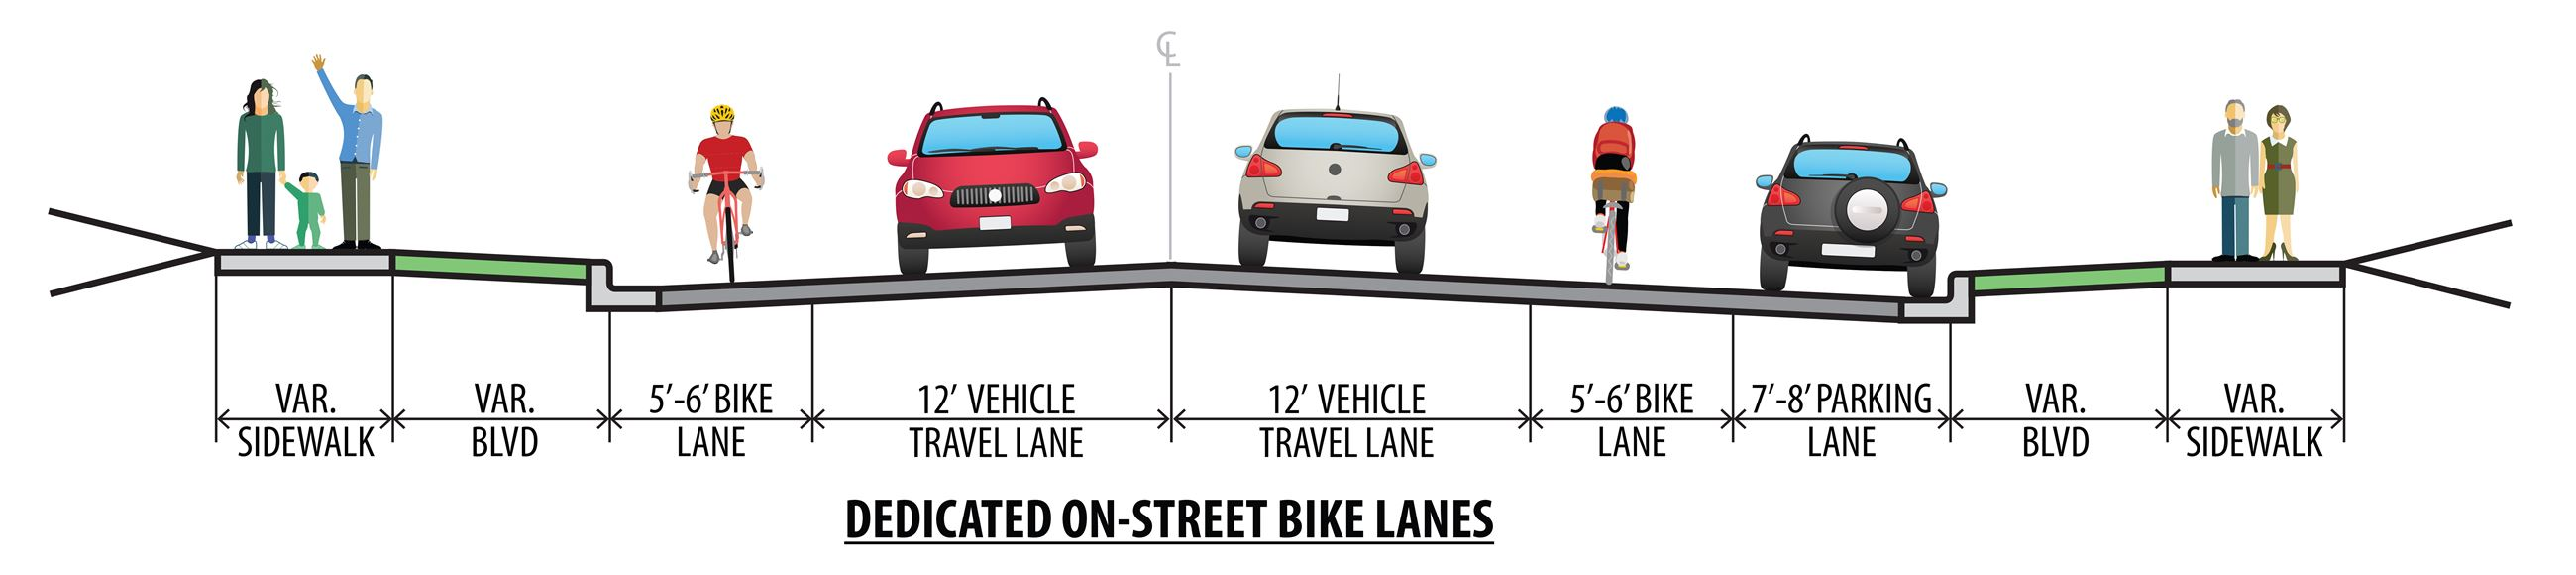 Cross Section of On-Street Bike Lane Related to Roadway